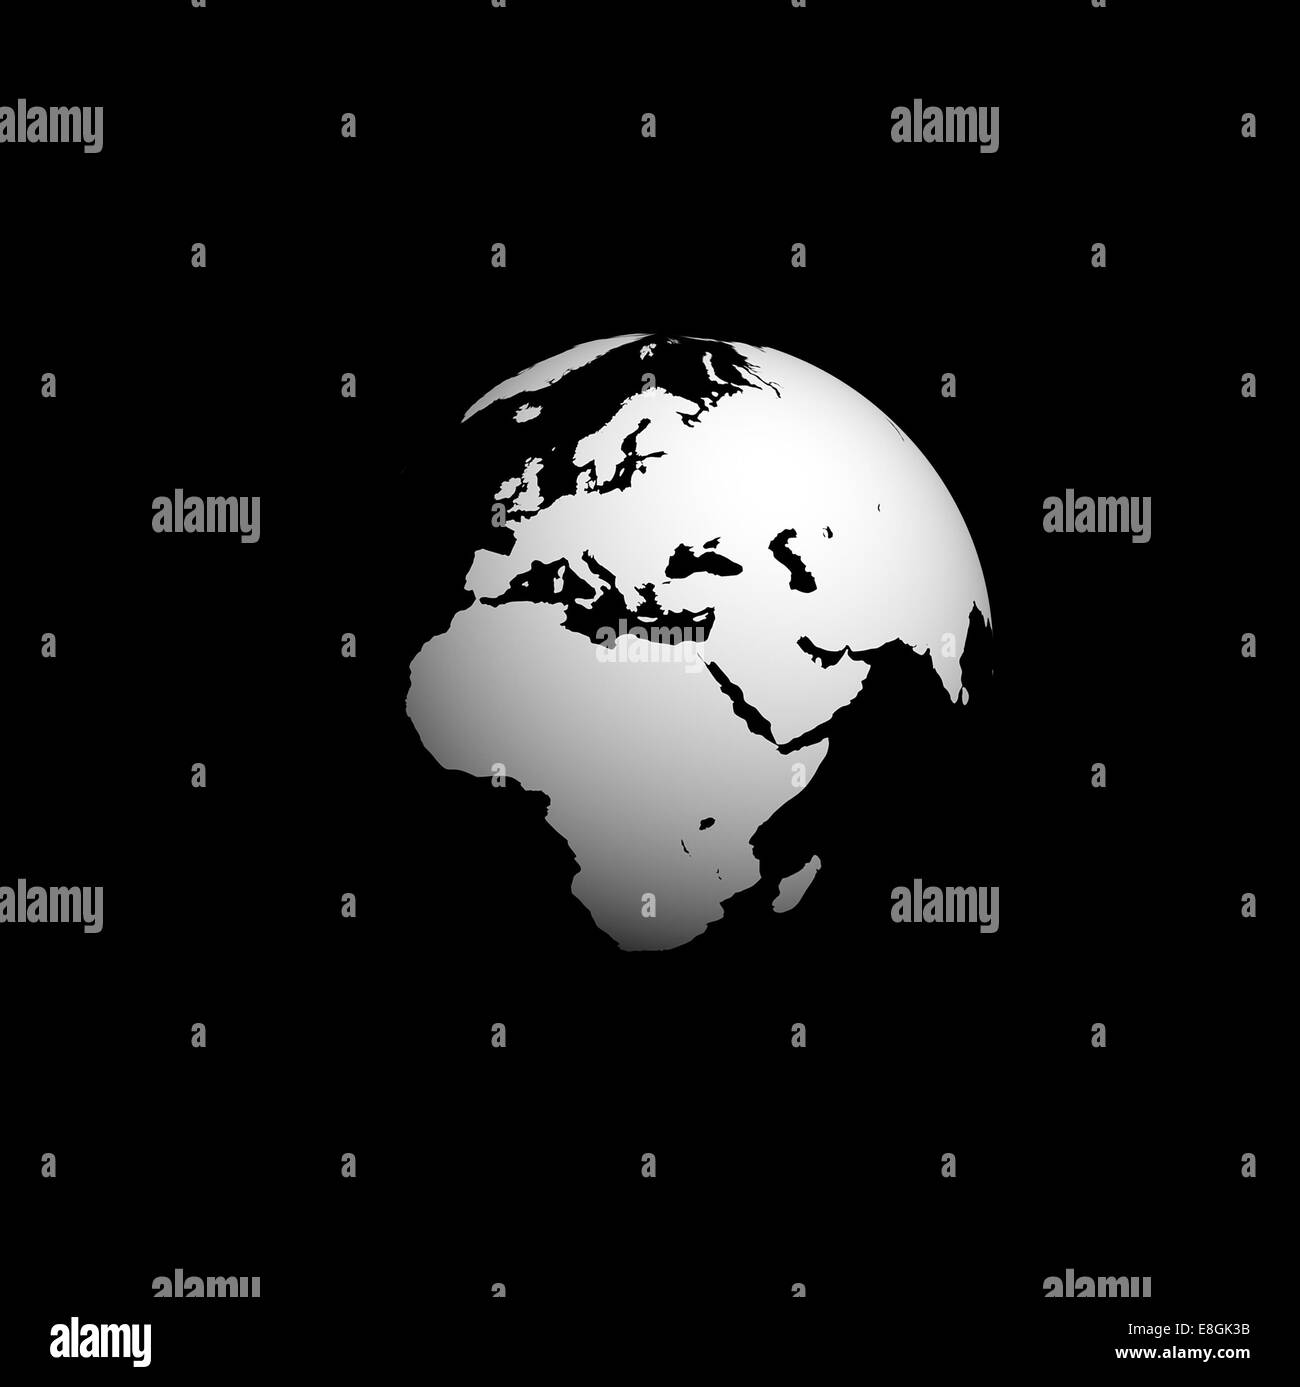 Digitally generated image of planet earth, Black and white globe - Stock Image